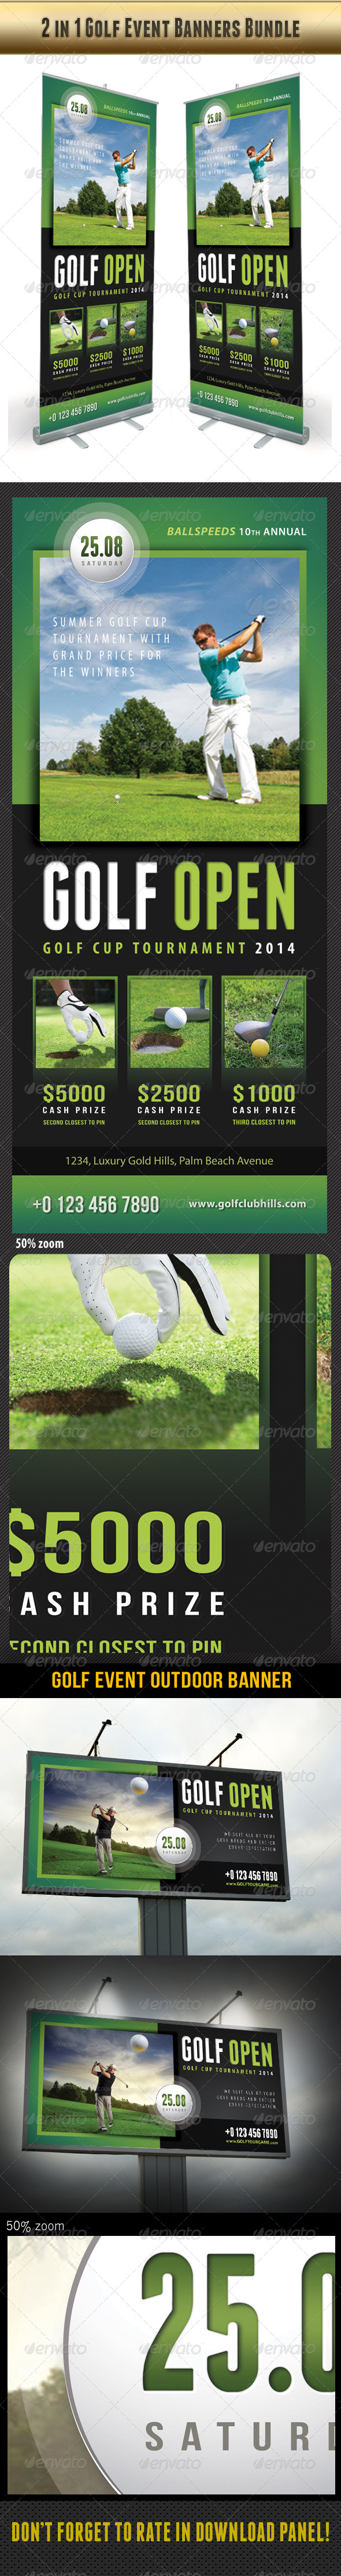 GraphicRiver 2 in 1 Golf Event Banners Bundle 02 8142643